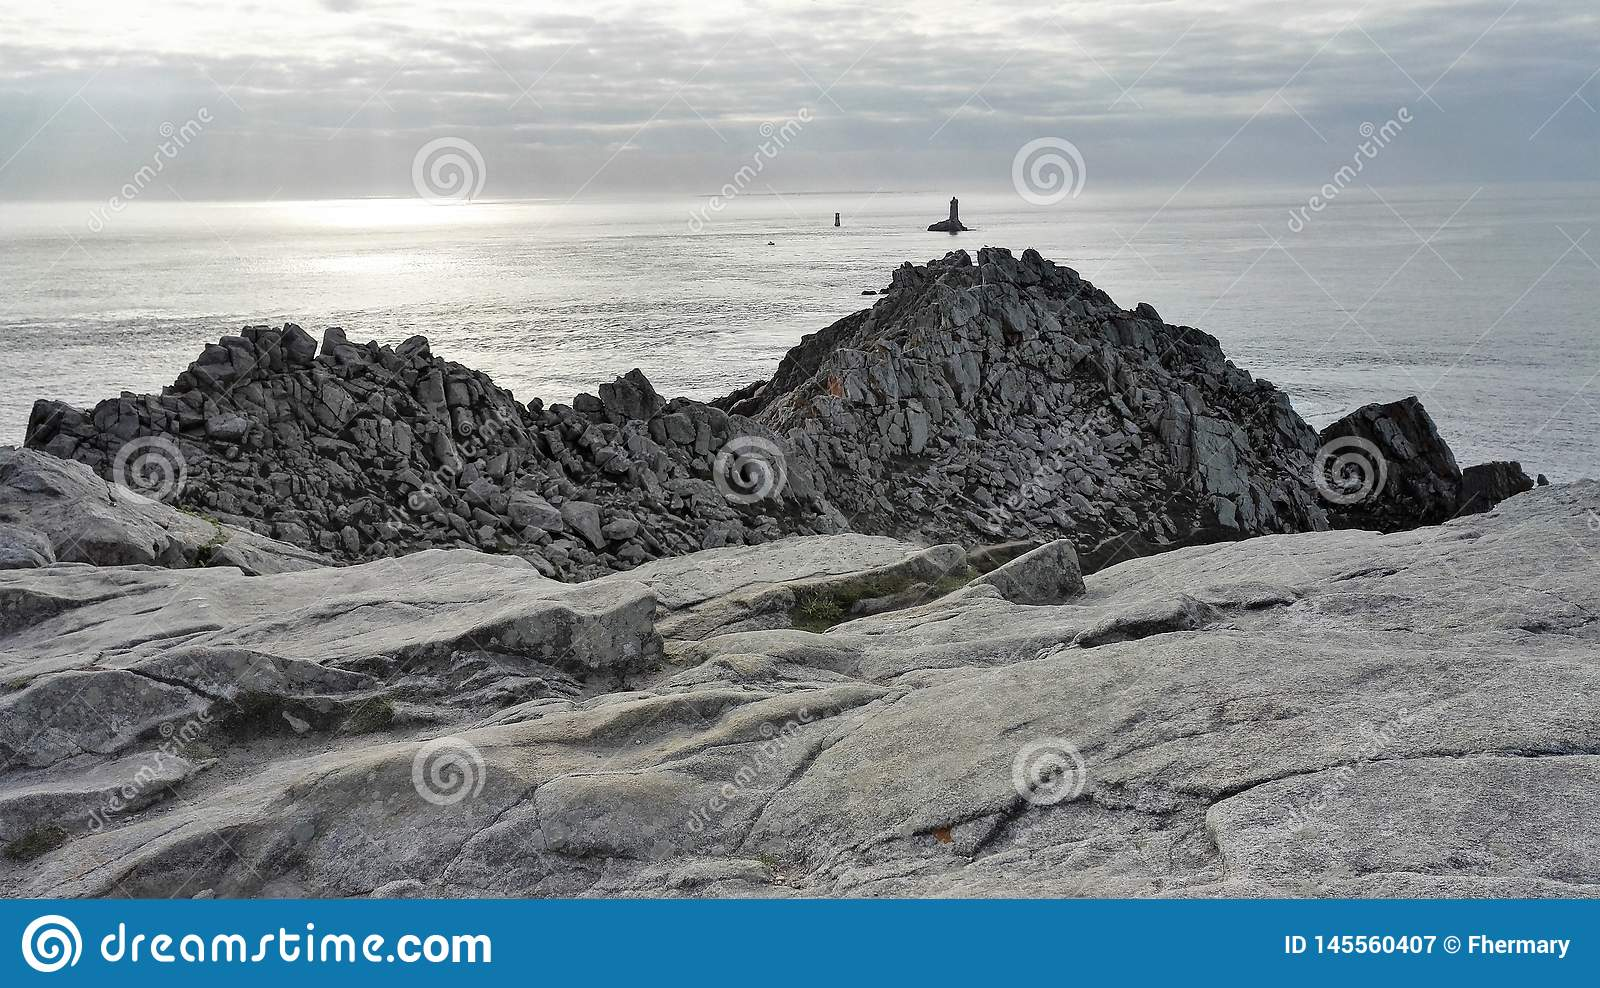 View of Pointe du Raz in Finistère, Brittany, France, Europe